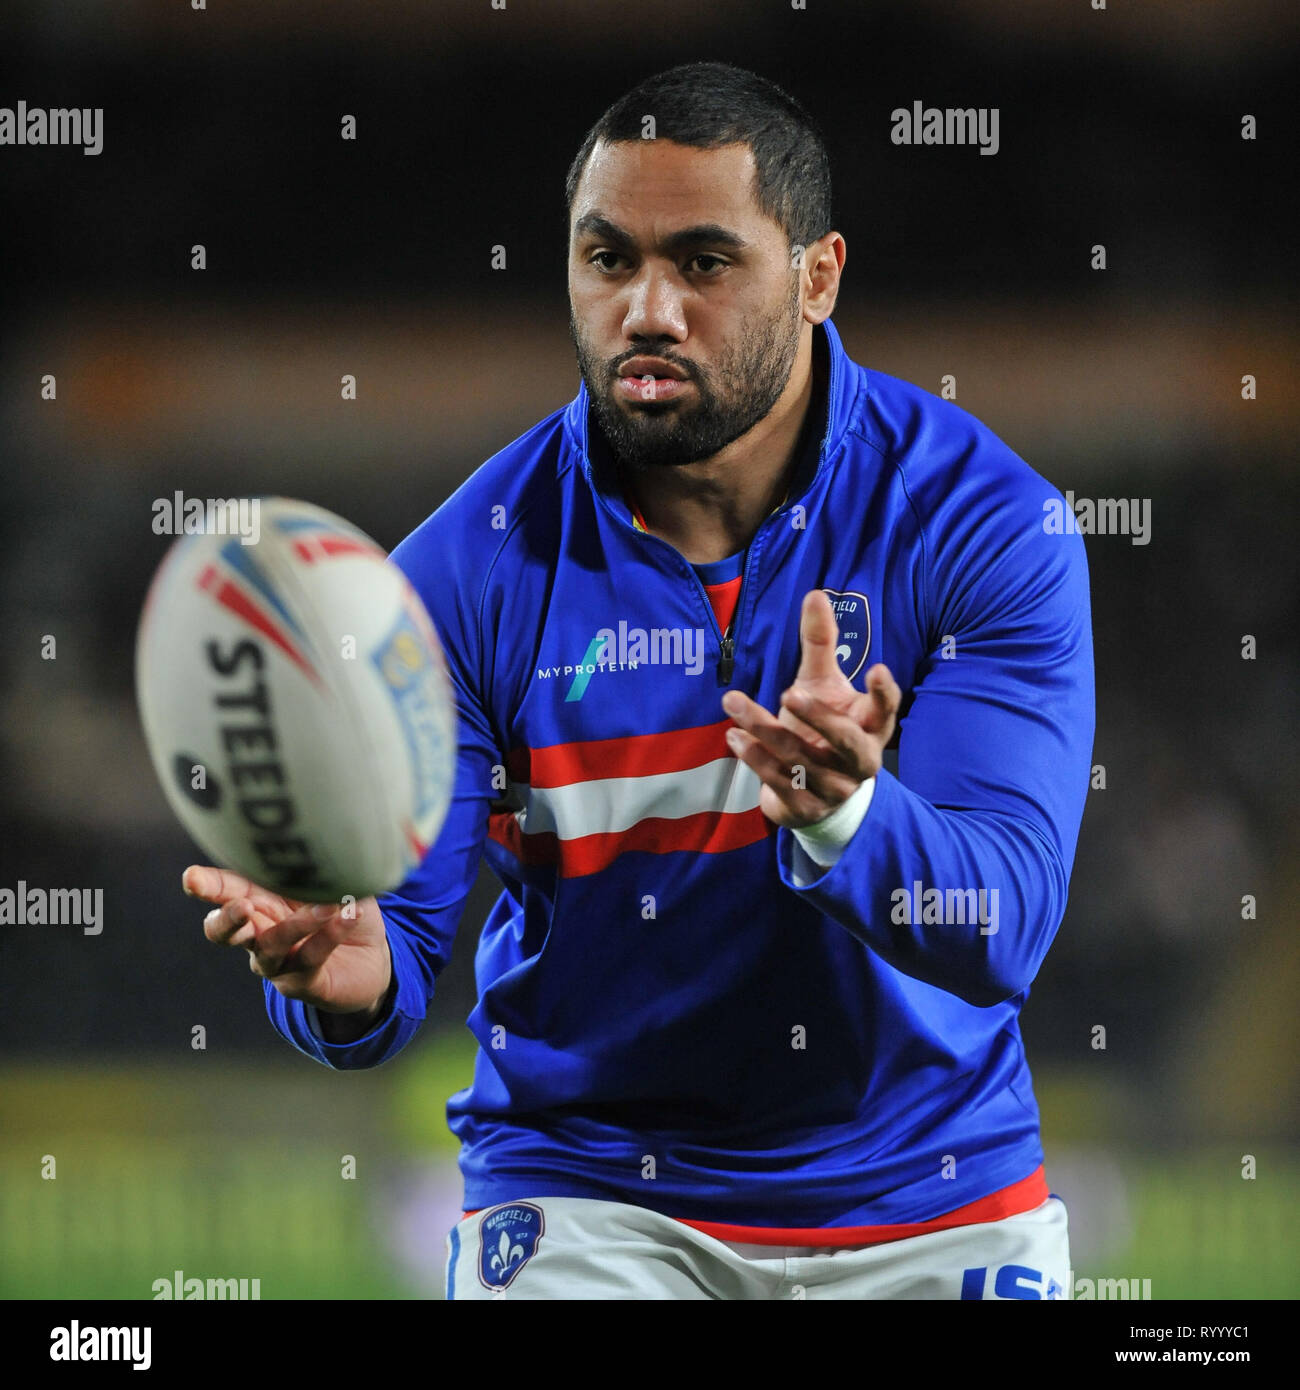 Hull, UK, 15 3 2019. 15 March 2019. KCOM Stadium, Hull, England; Rugby League Betfred Super League, Hull FC vs Wakefield Trinity; Bill Tupou in warm up.  Dean Williams Credit: Dean Williams/Alamy Live News Stock Photo